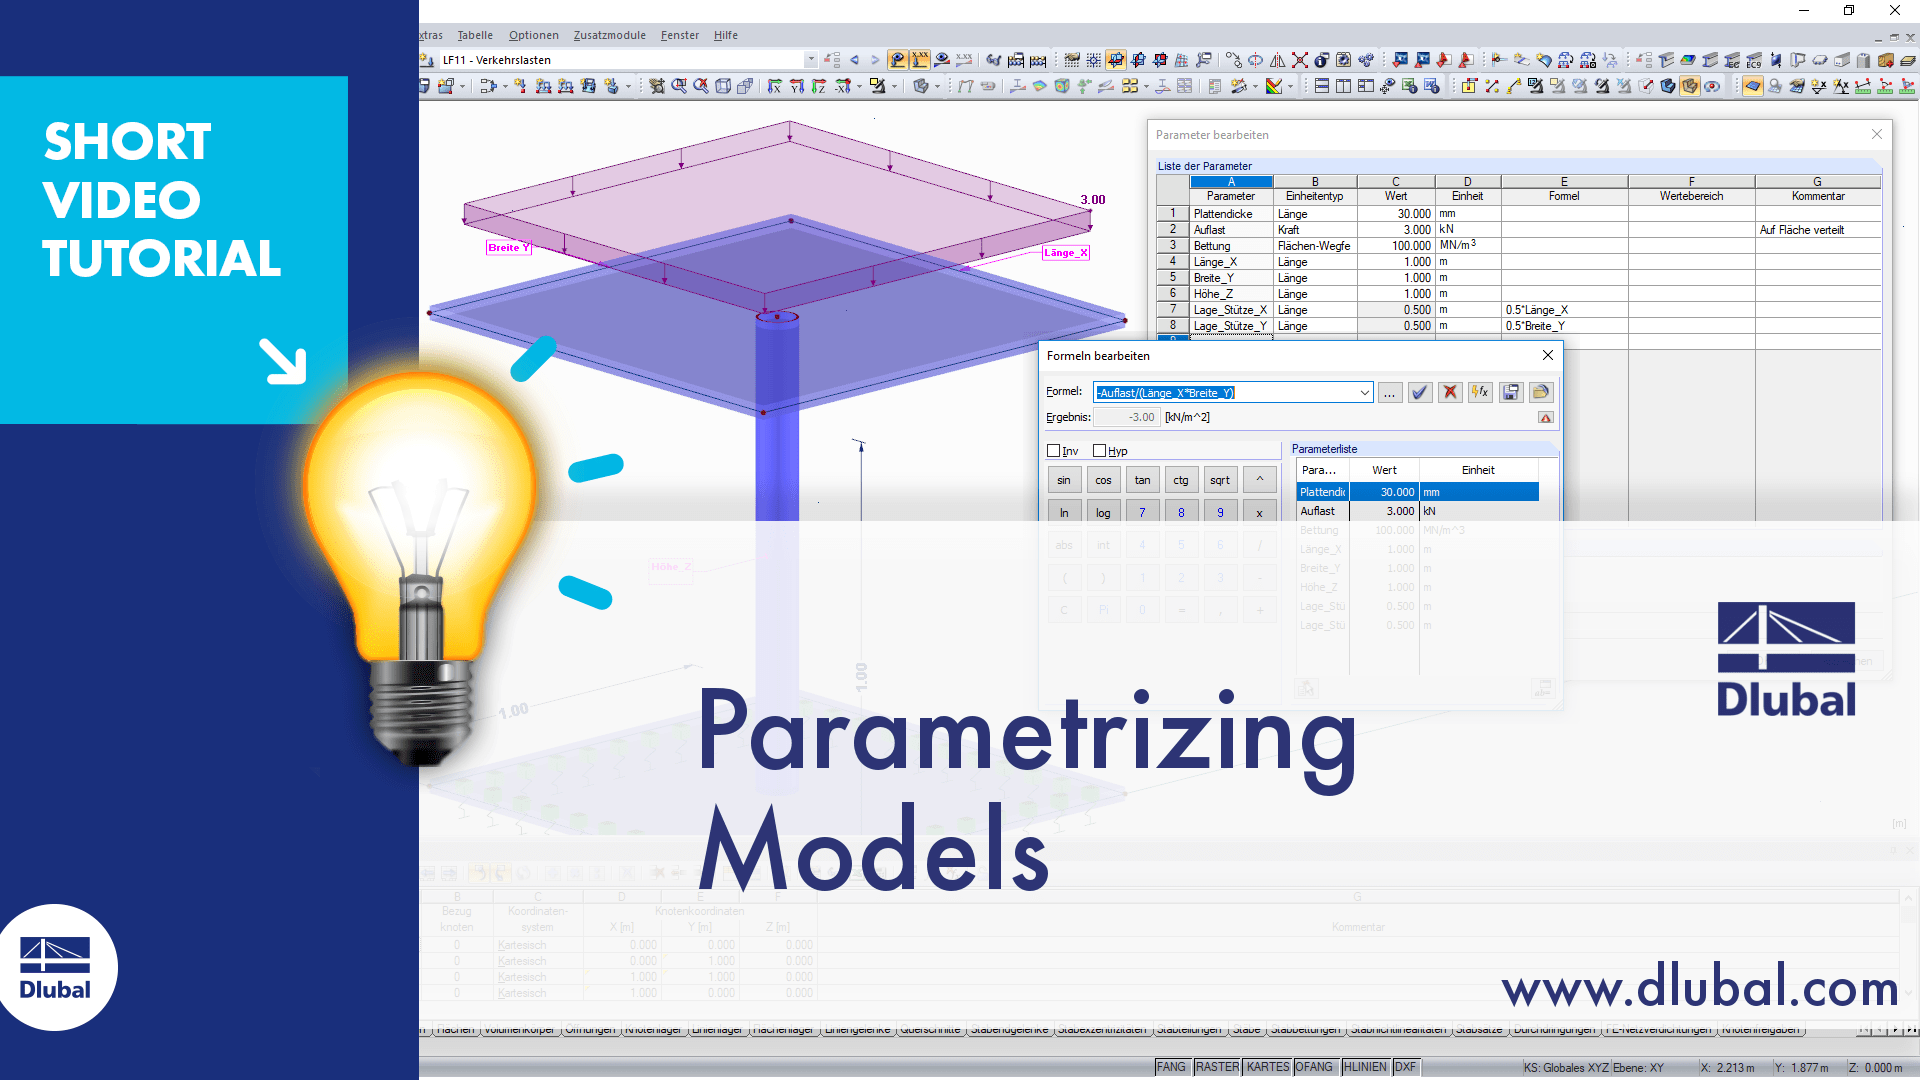 Video: Parametrizing Models